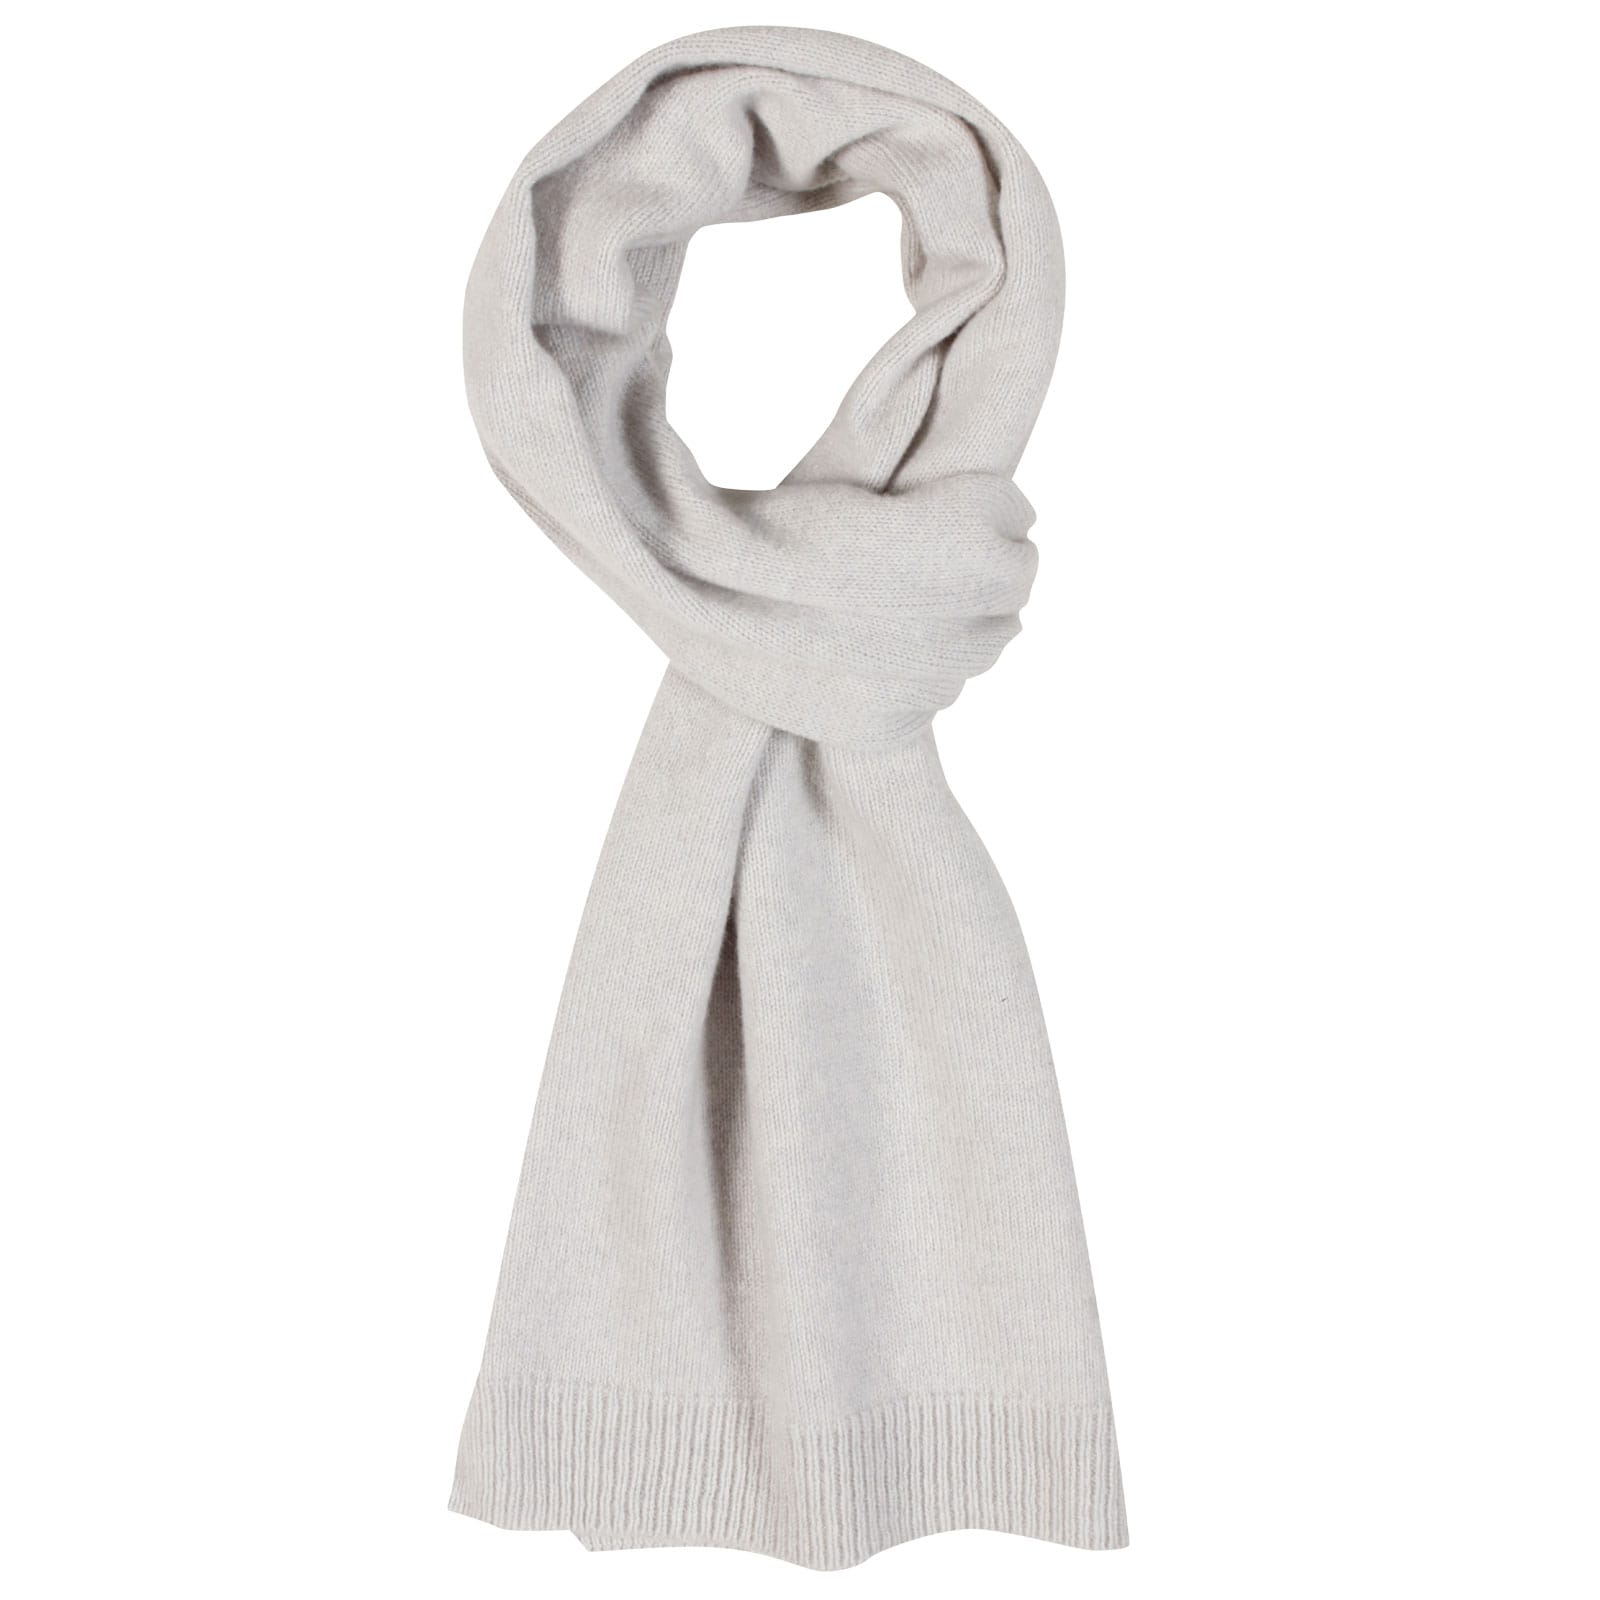 John Smedley star Wool and Cashmere Scarf in Soft Grey-ONE